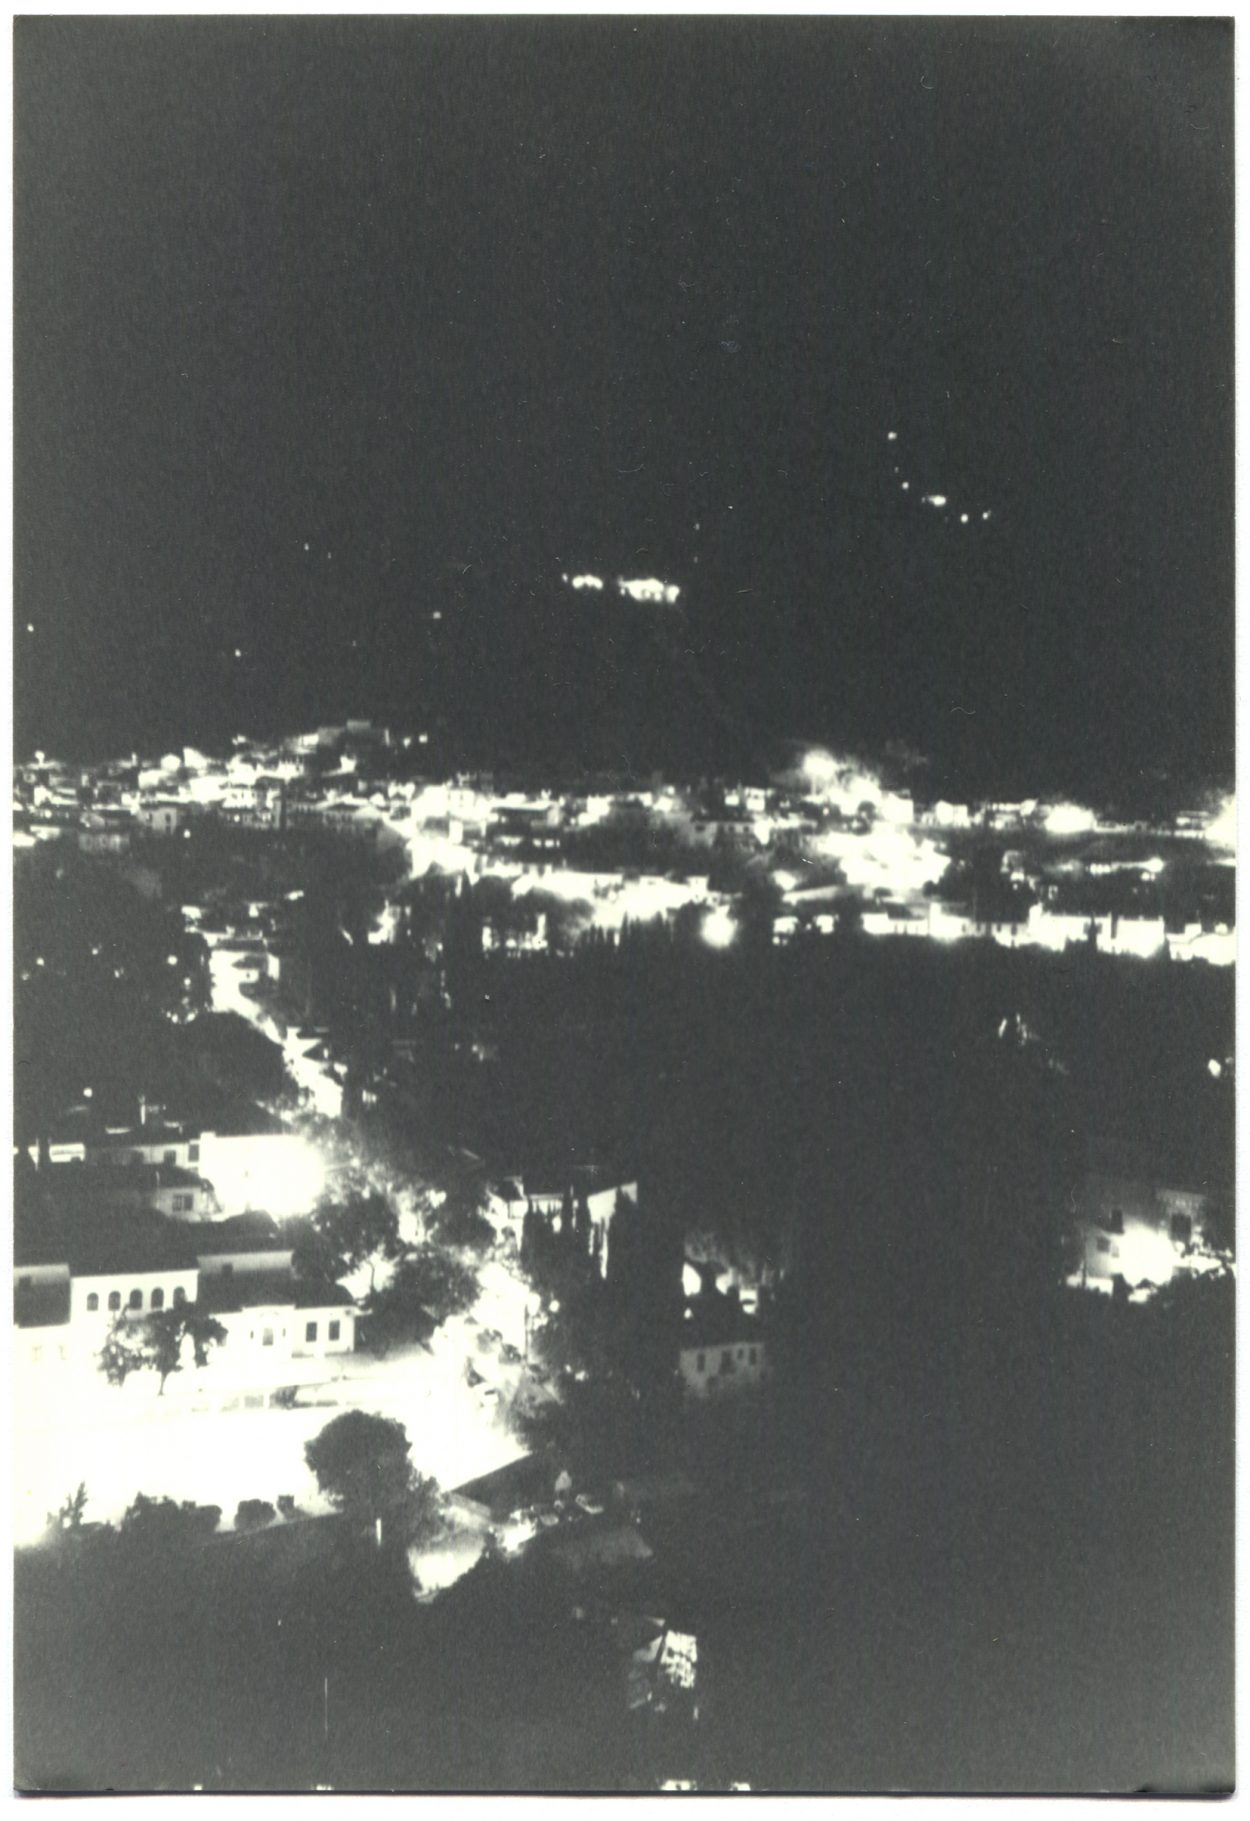 Black and white photo of city at night